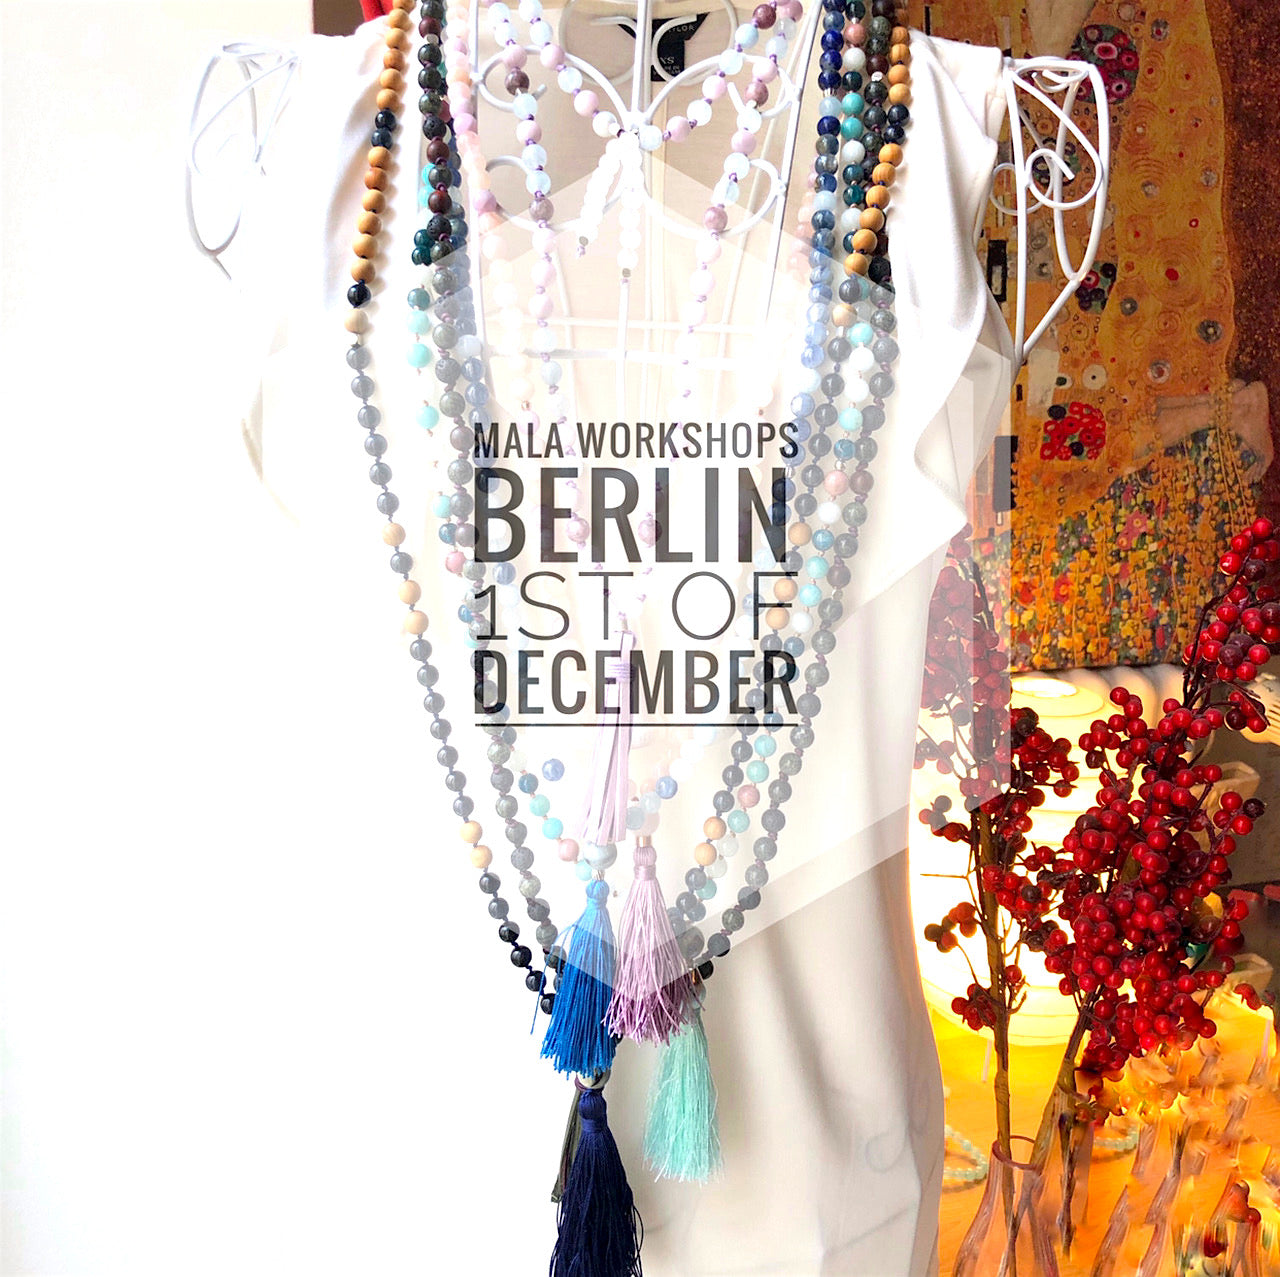 Create Your Own Gift: Mala Beads Workshop, 1st of December, Berlin